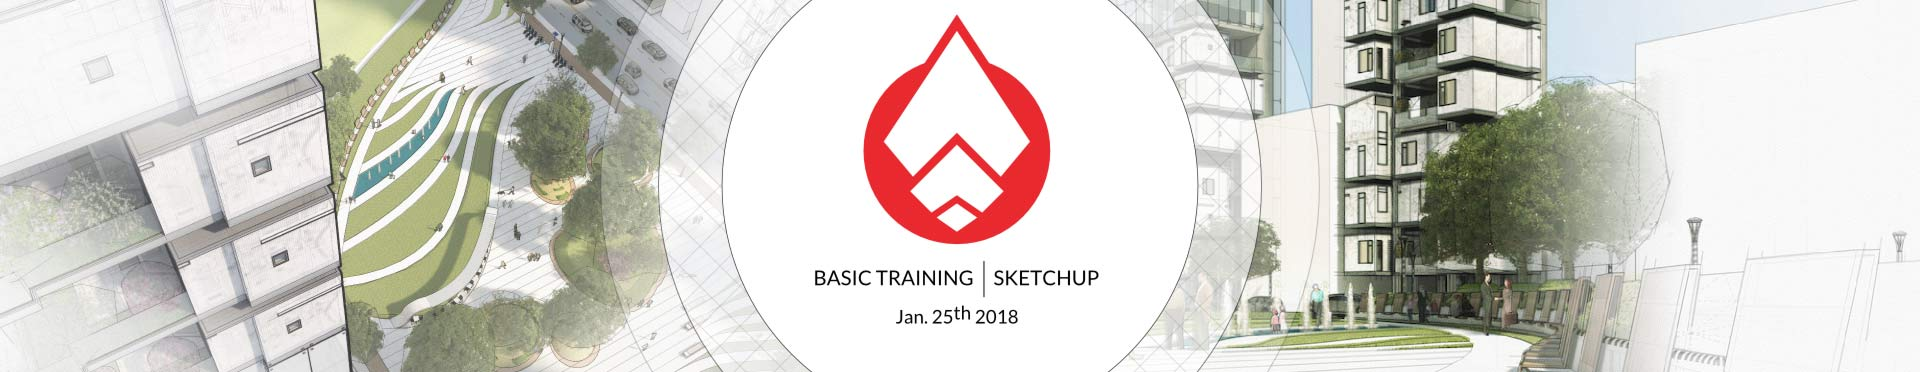 SketchUp Basic Training